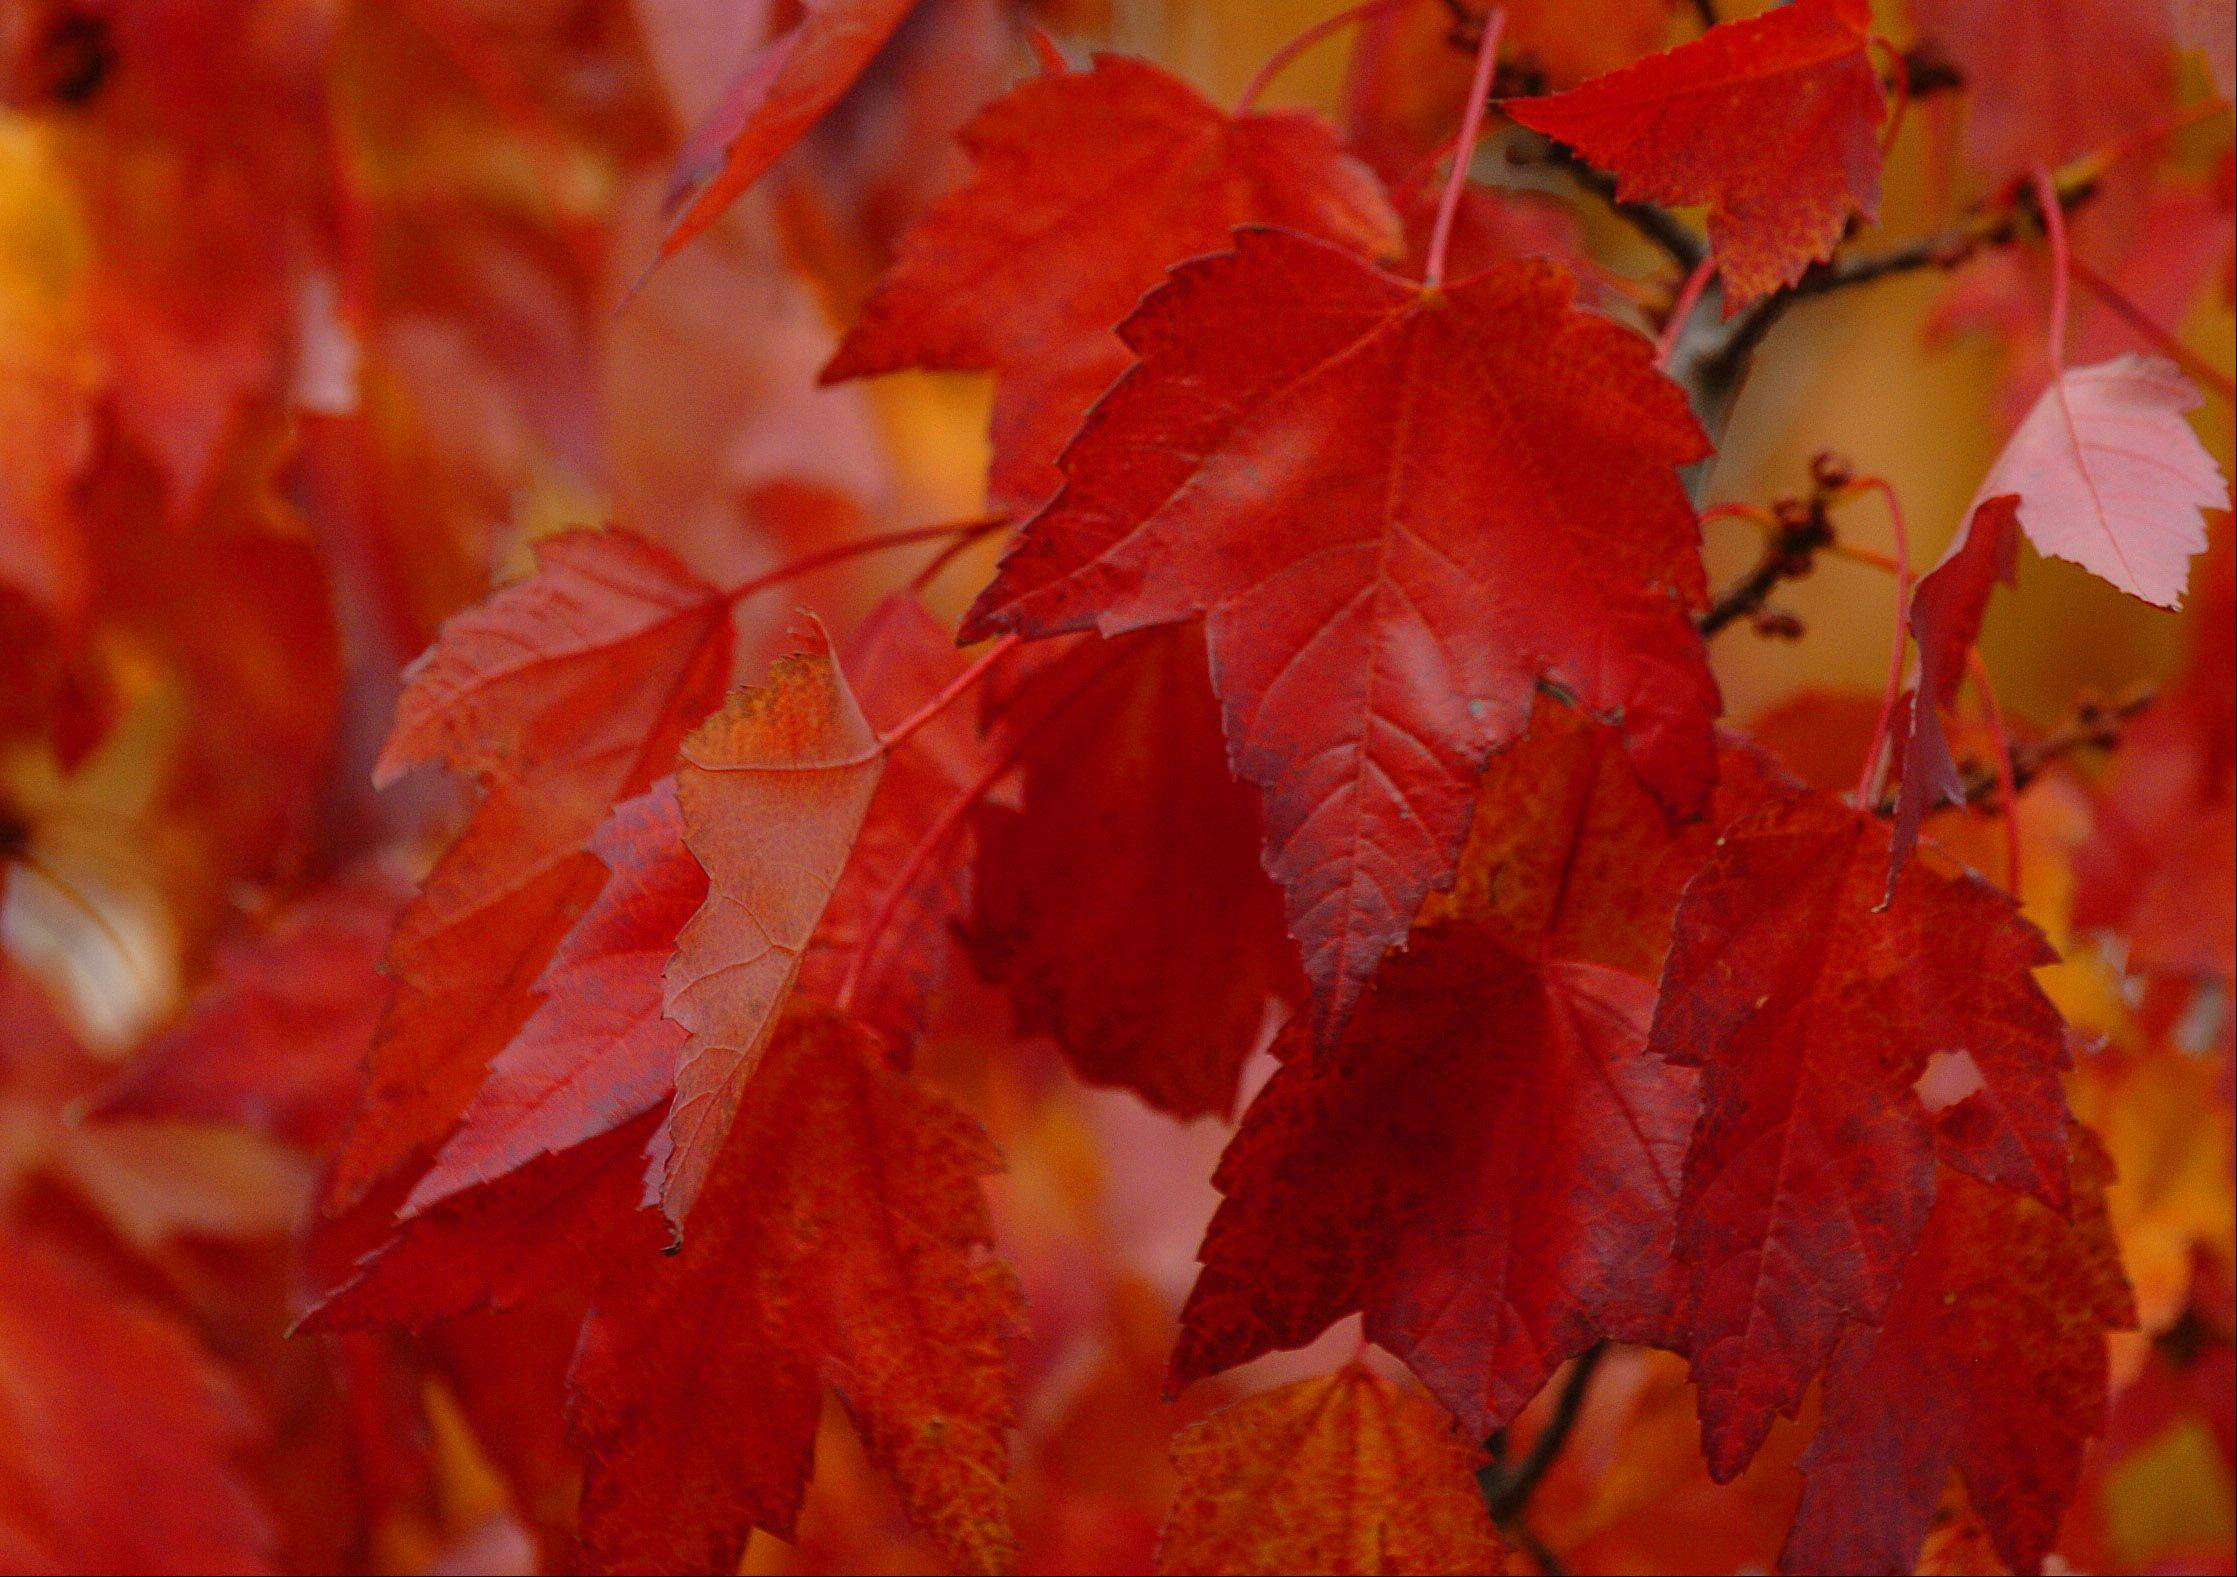 Maple leafs show their color at the Morton Arboretum in Lisle. Peak color is expected to be some time late next week.